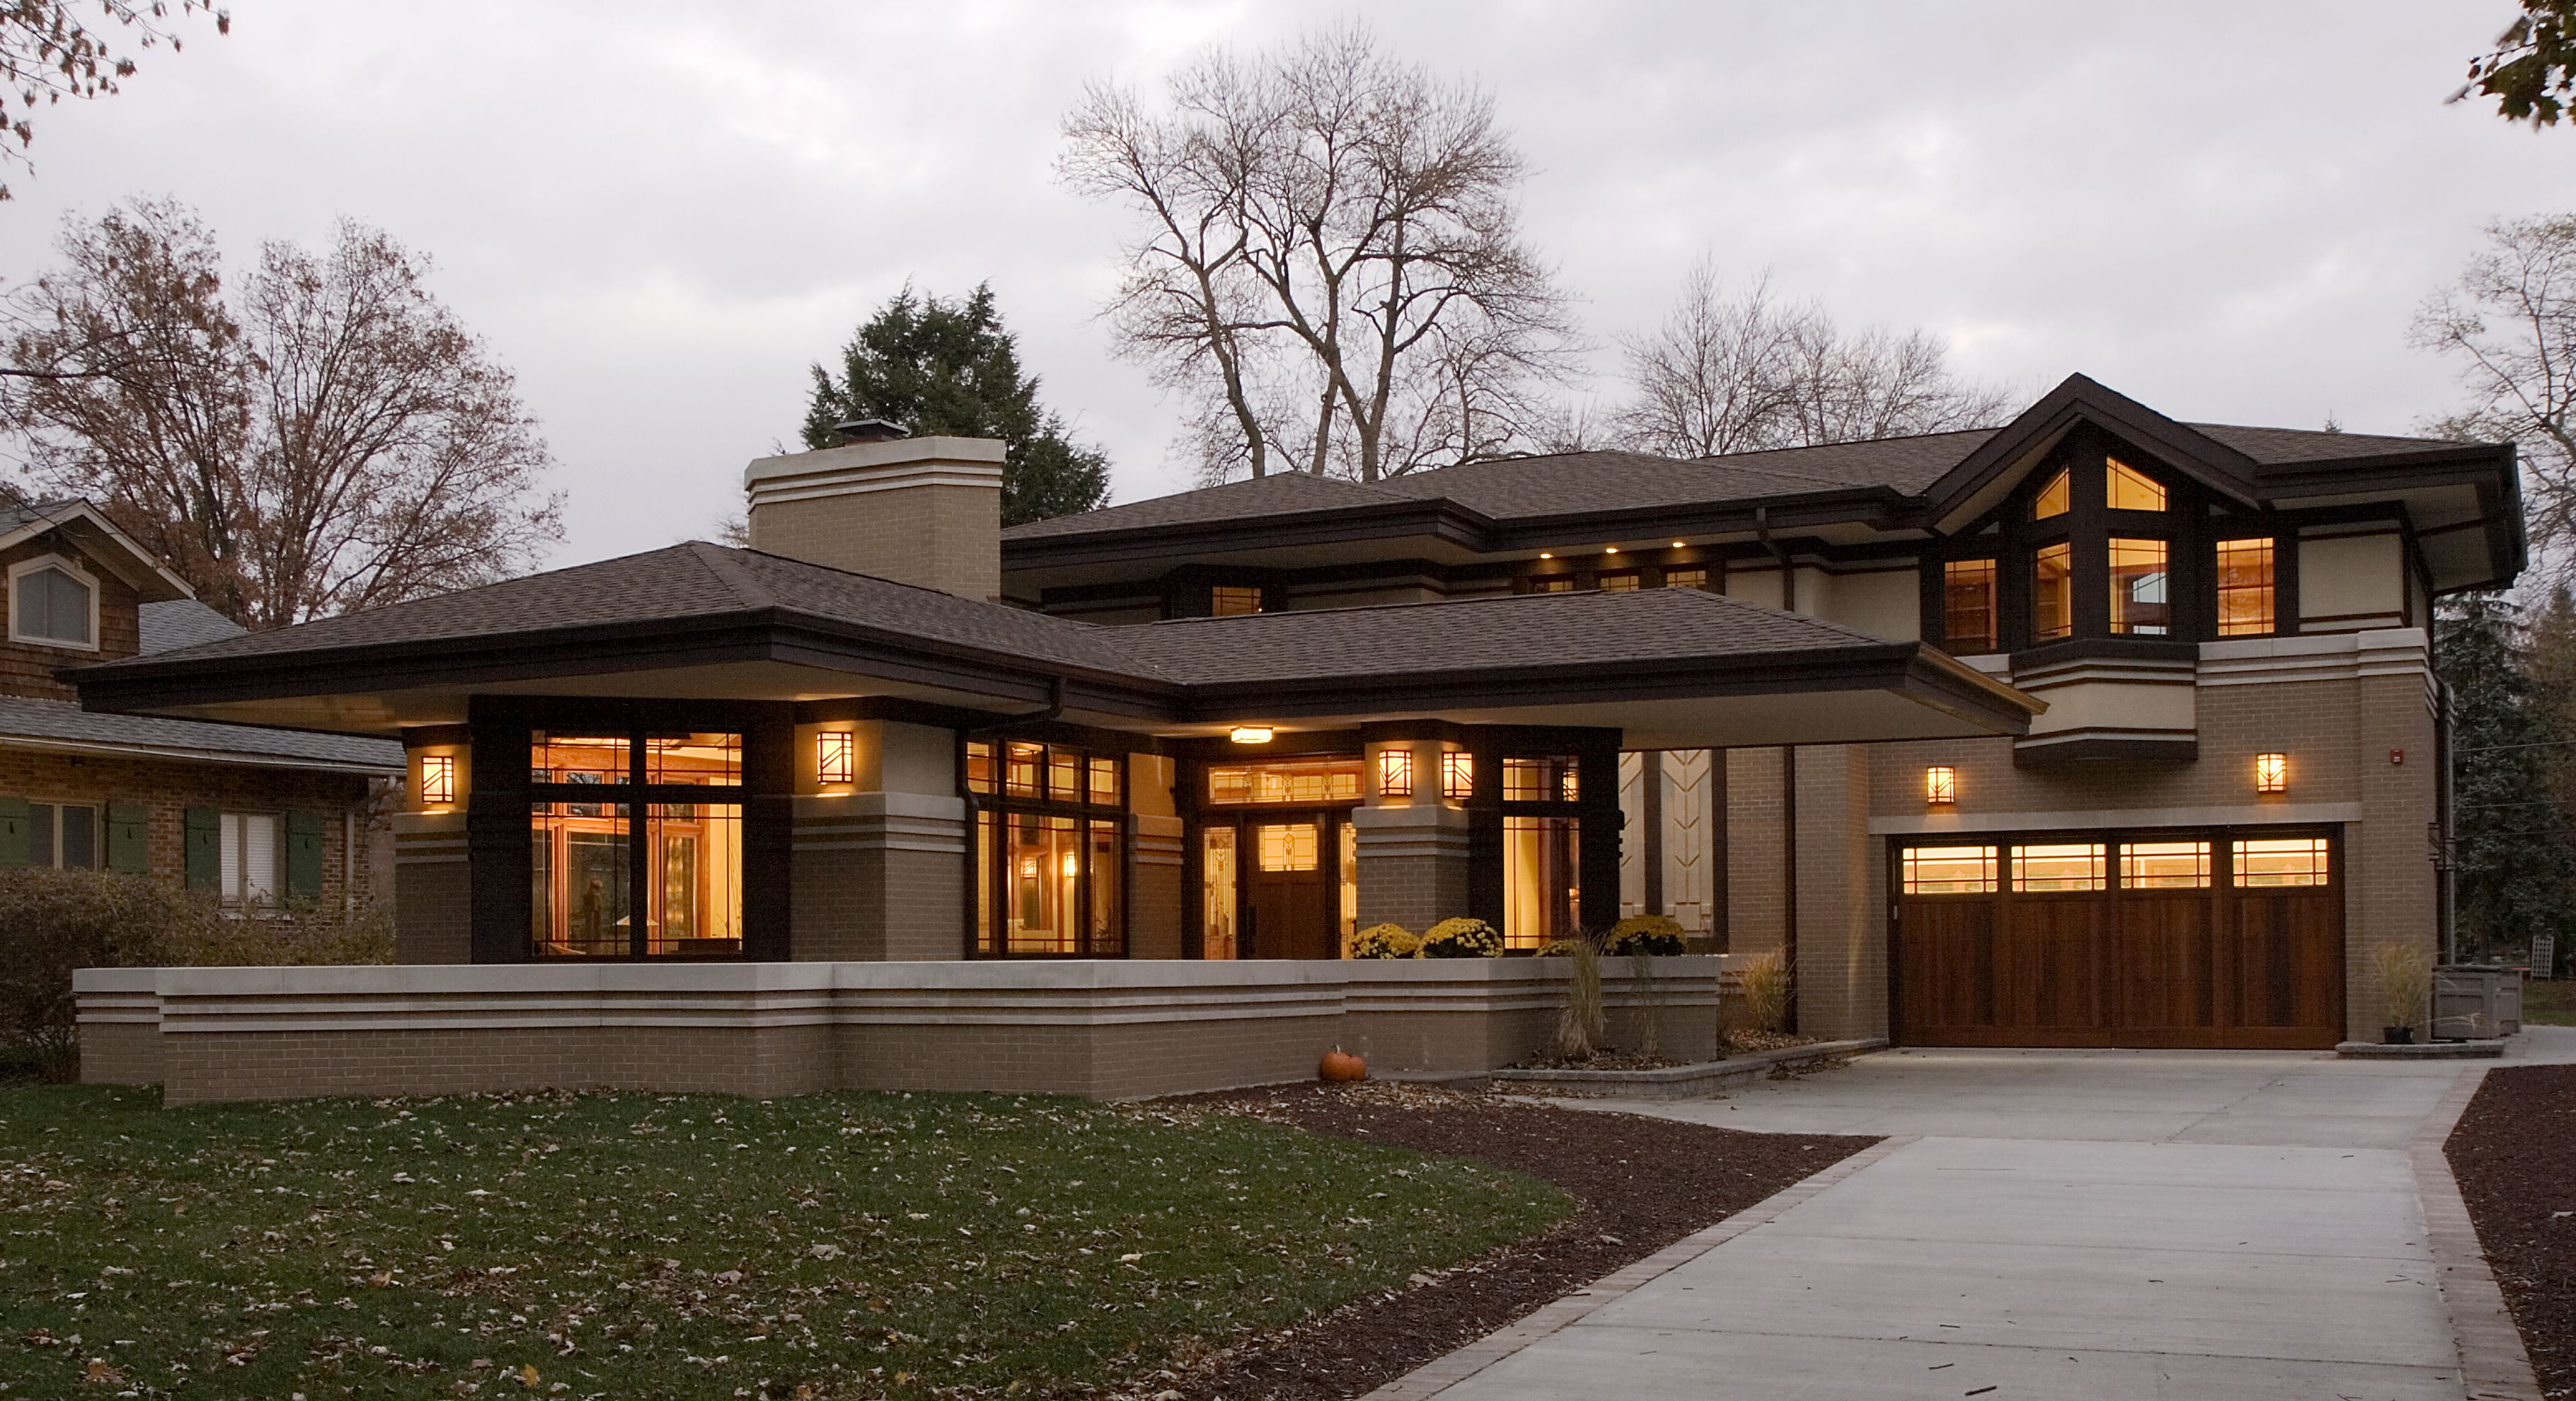 Frank Lloyd Wright Architectural Style frank lloyd wright homes | comely frank lloyd wright decozt house